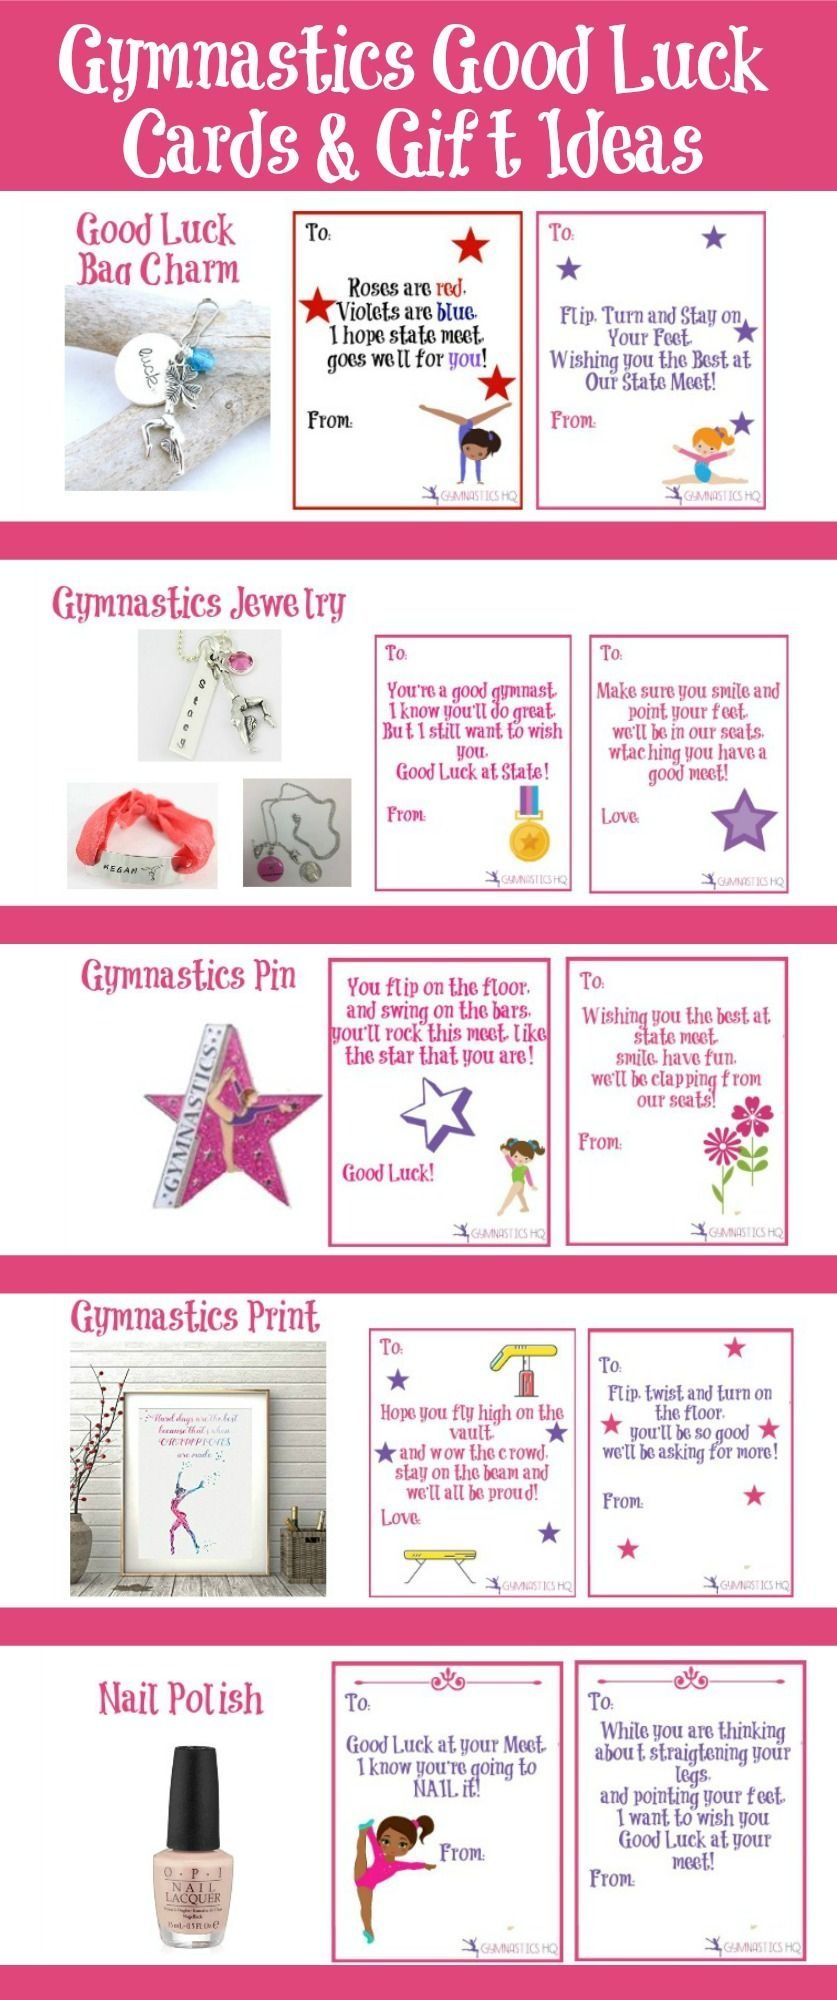 Gymnastics Good Luck Gift Ideas Along With Free Printable Good Luck - Free Printable Good Luck Cards